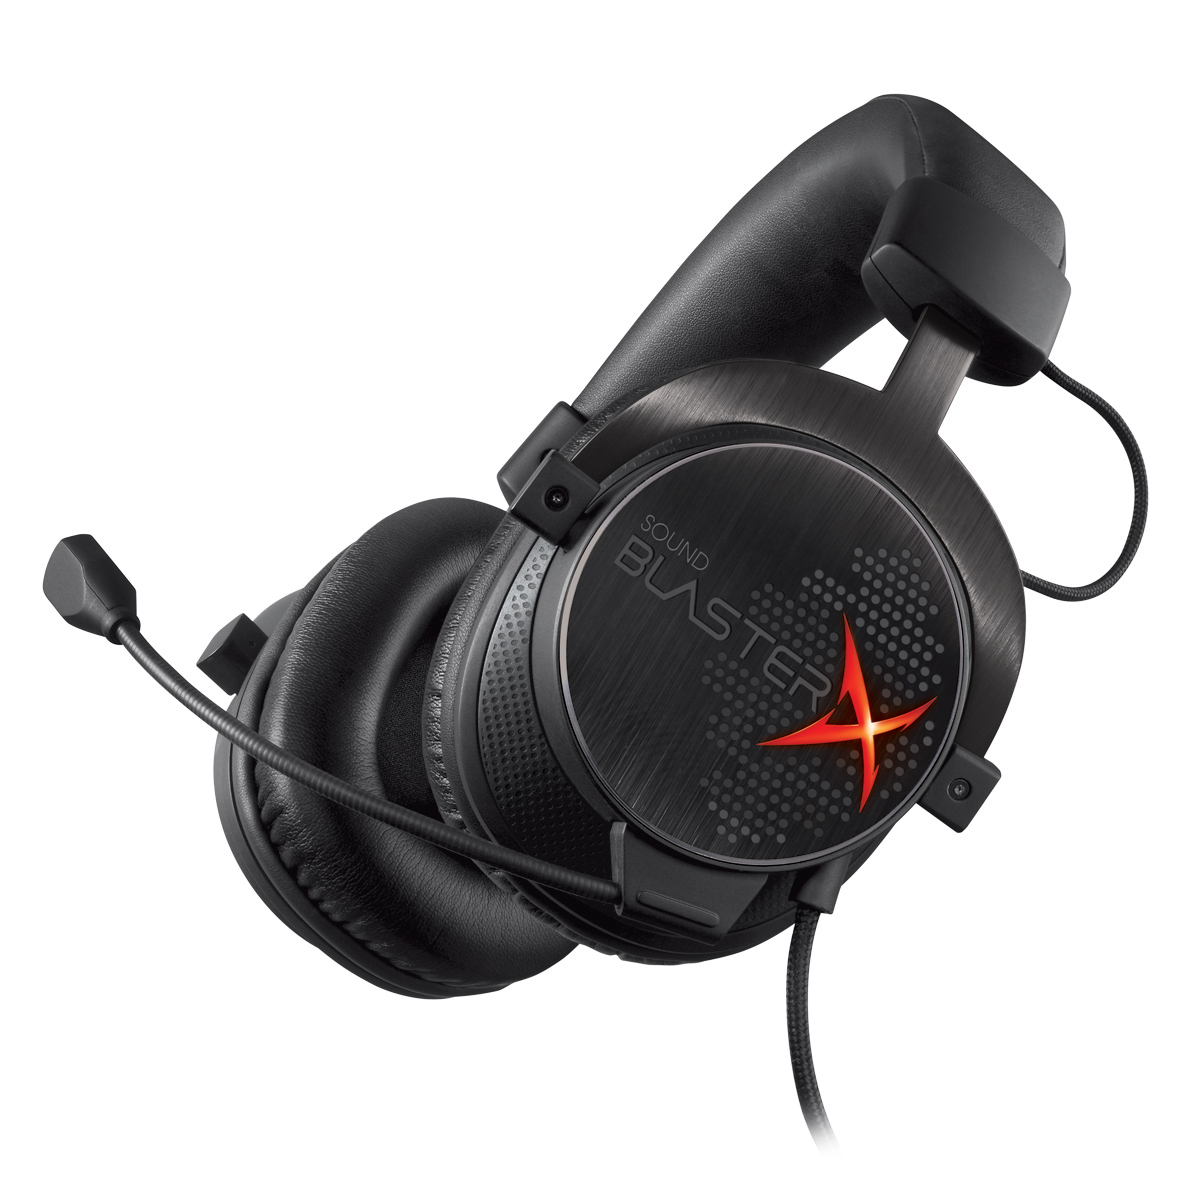 SoundBlasterX headset